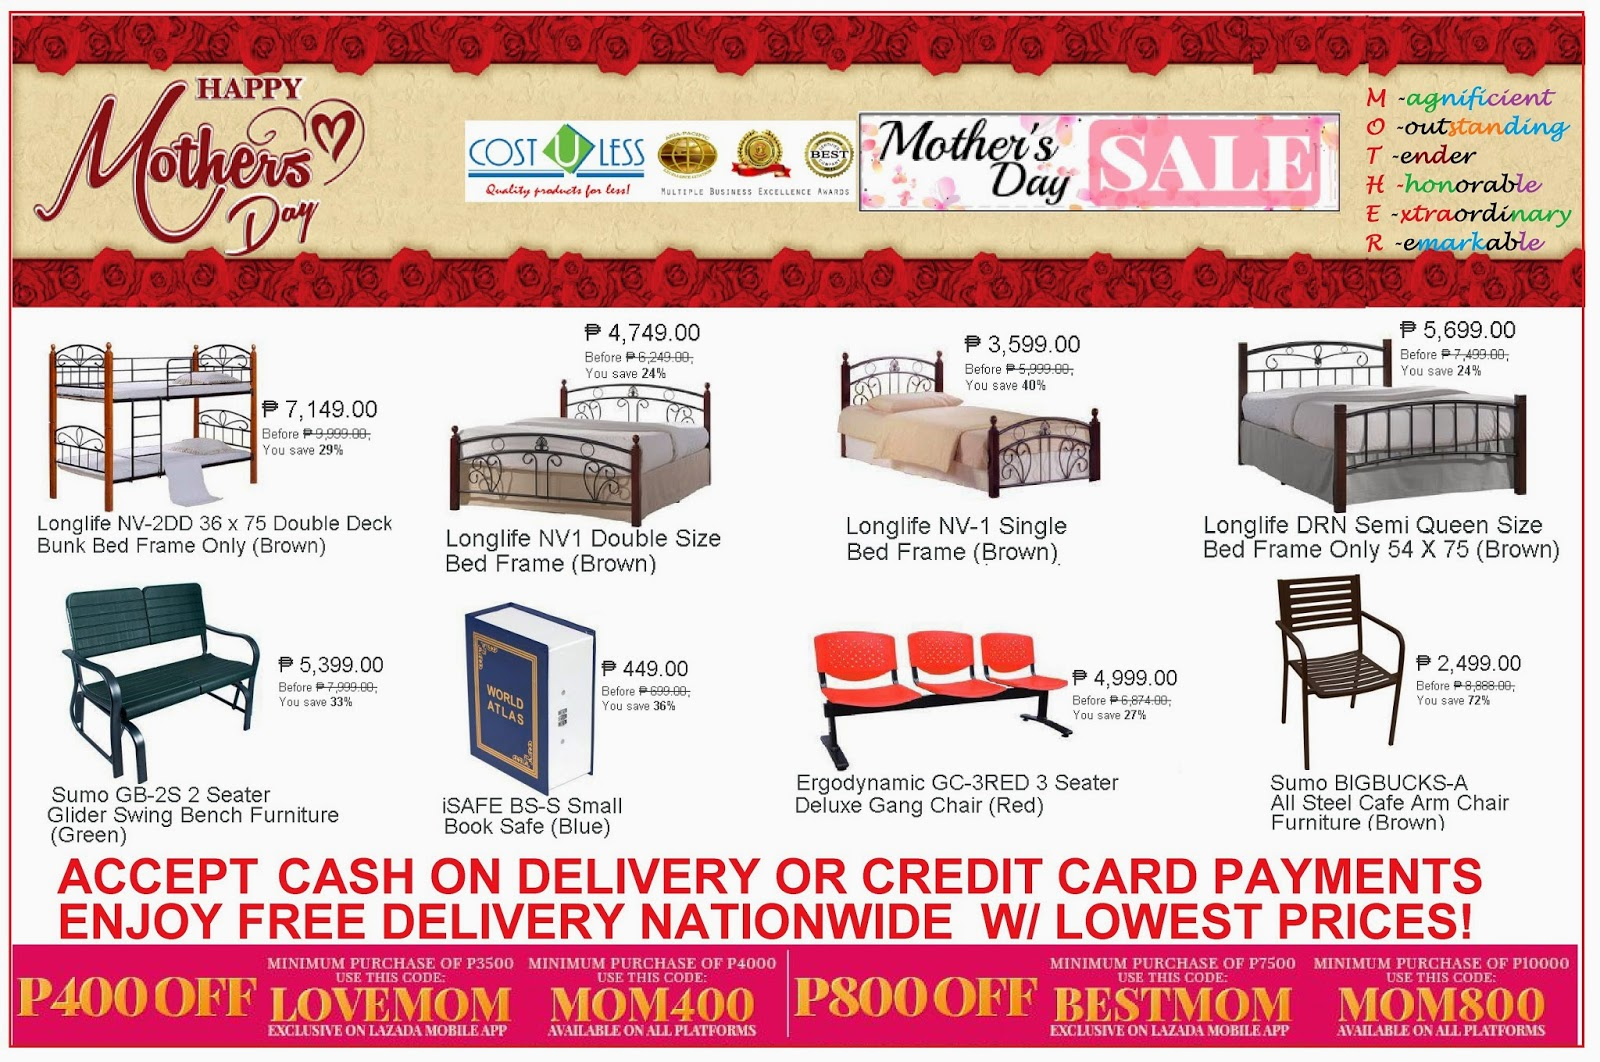 Furniture stores in manila philippines - Home Furniture Sale For Mother S Day